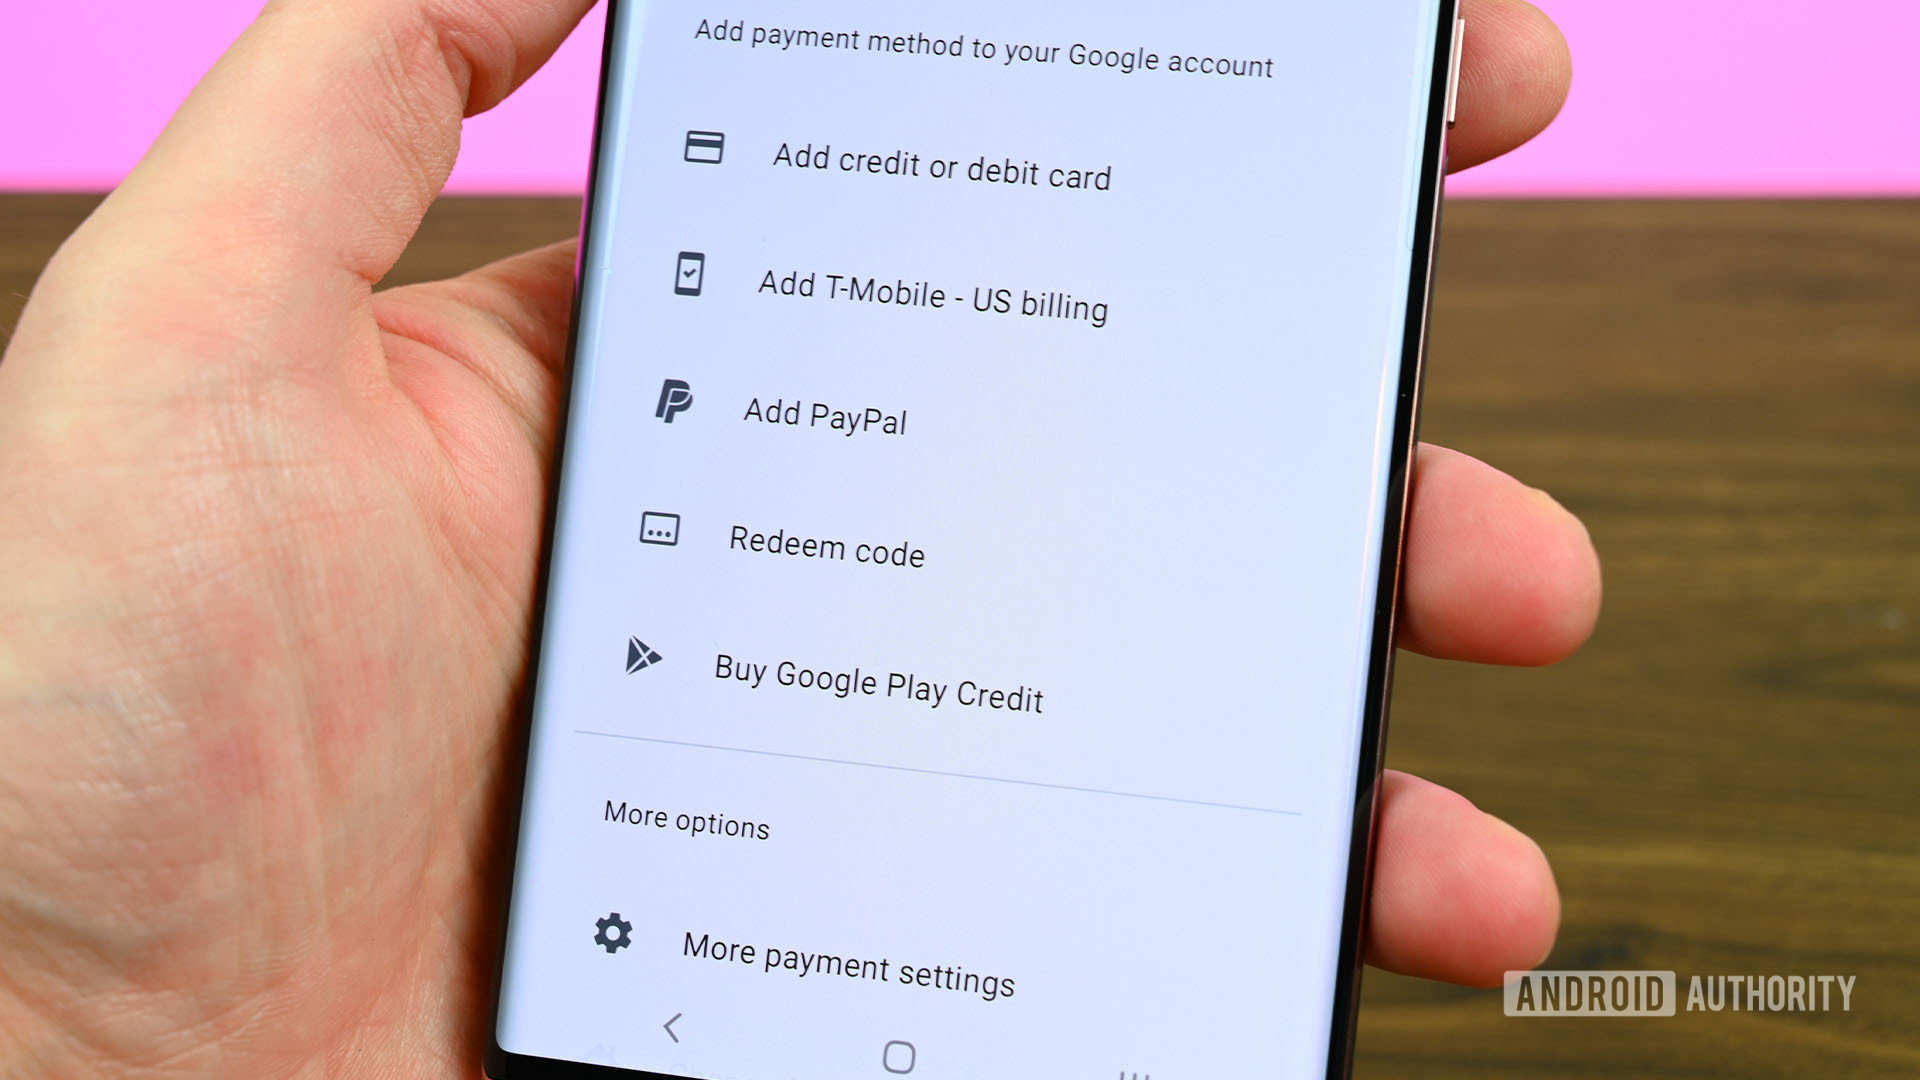 Google Play Store Add A Payment Method